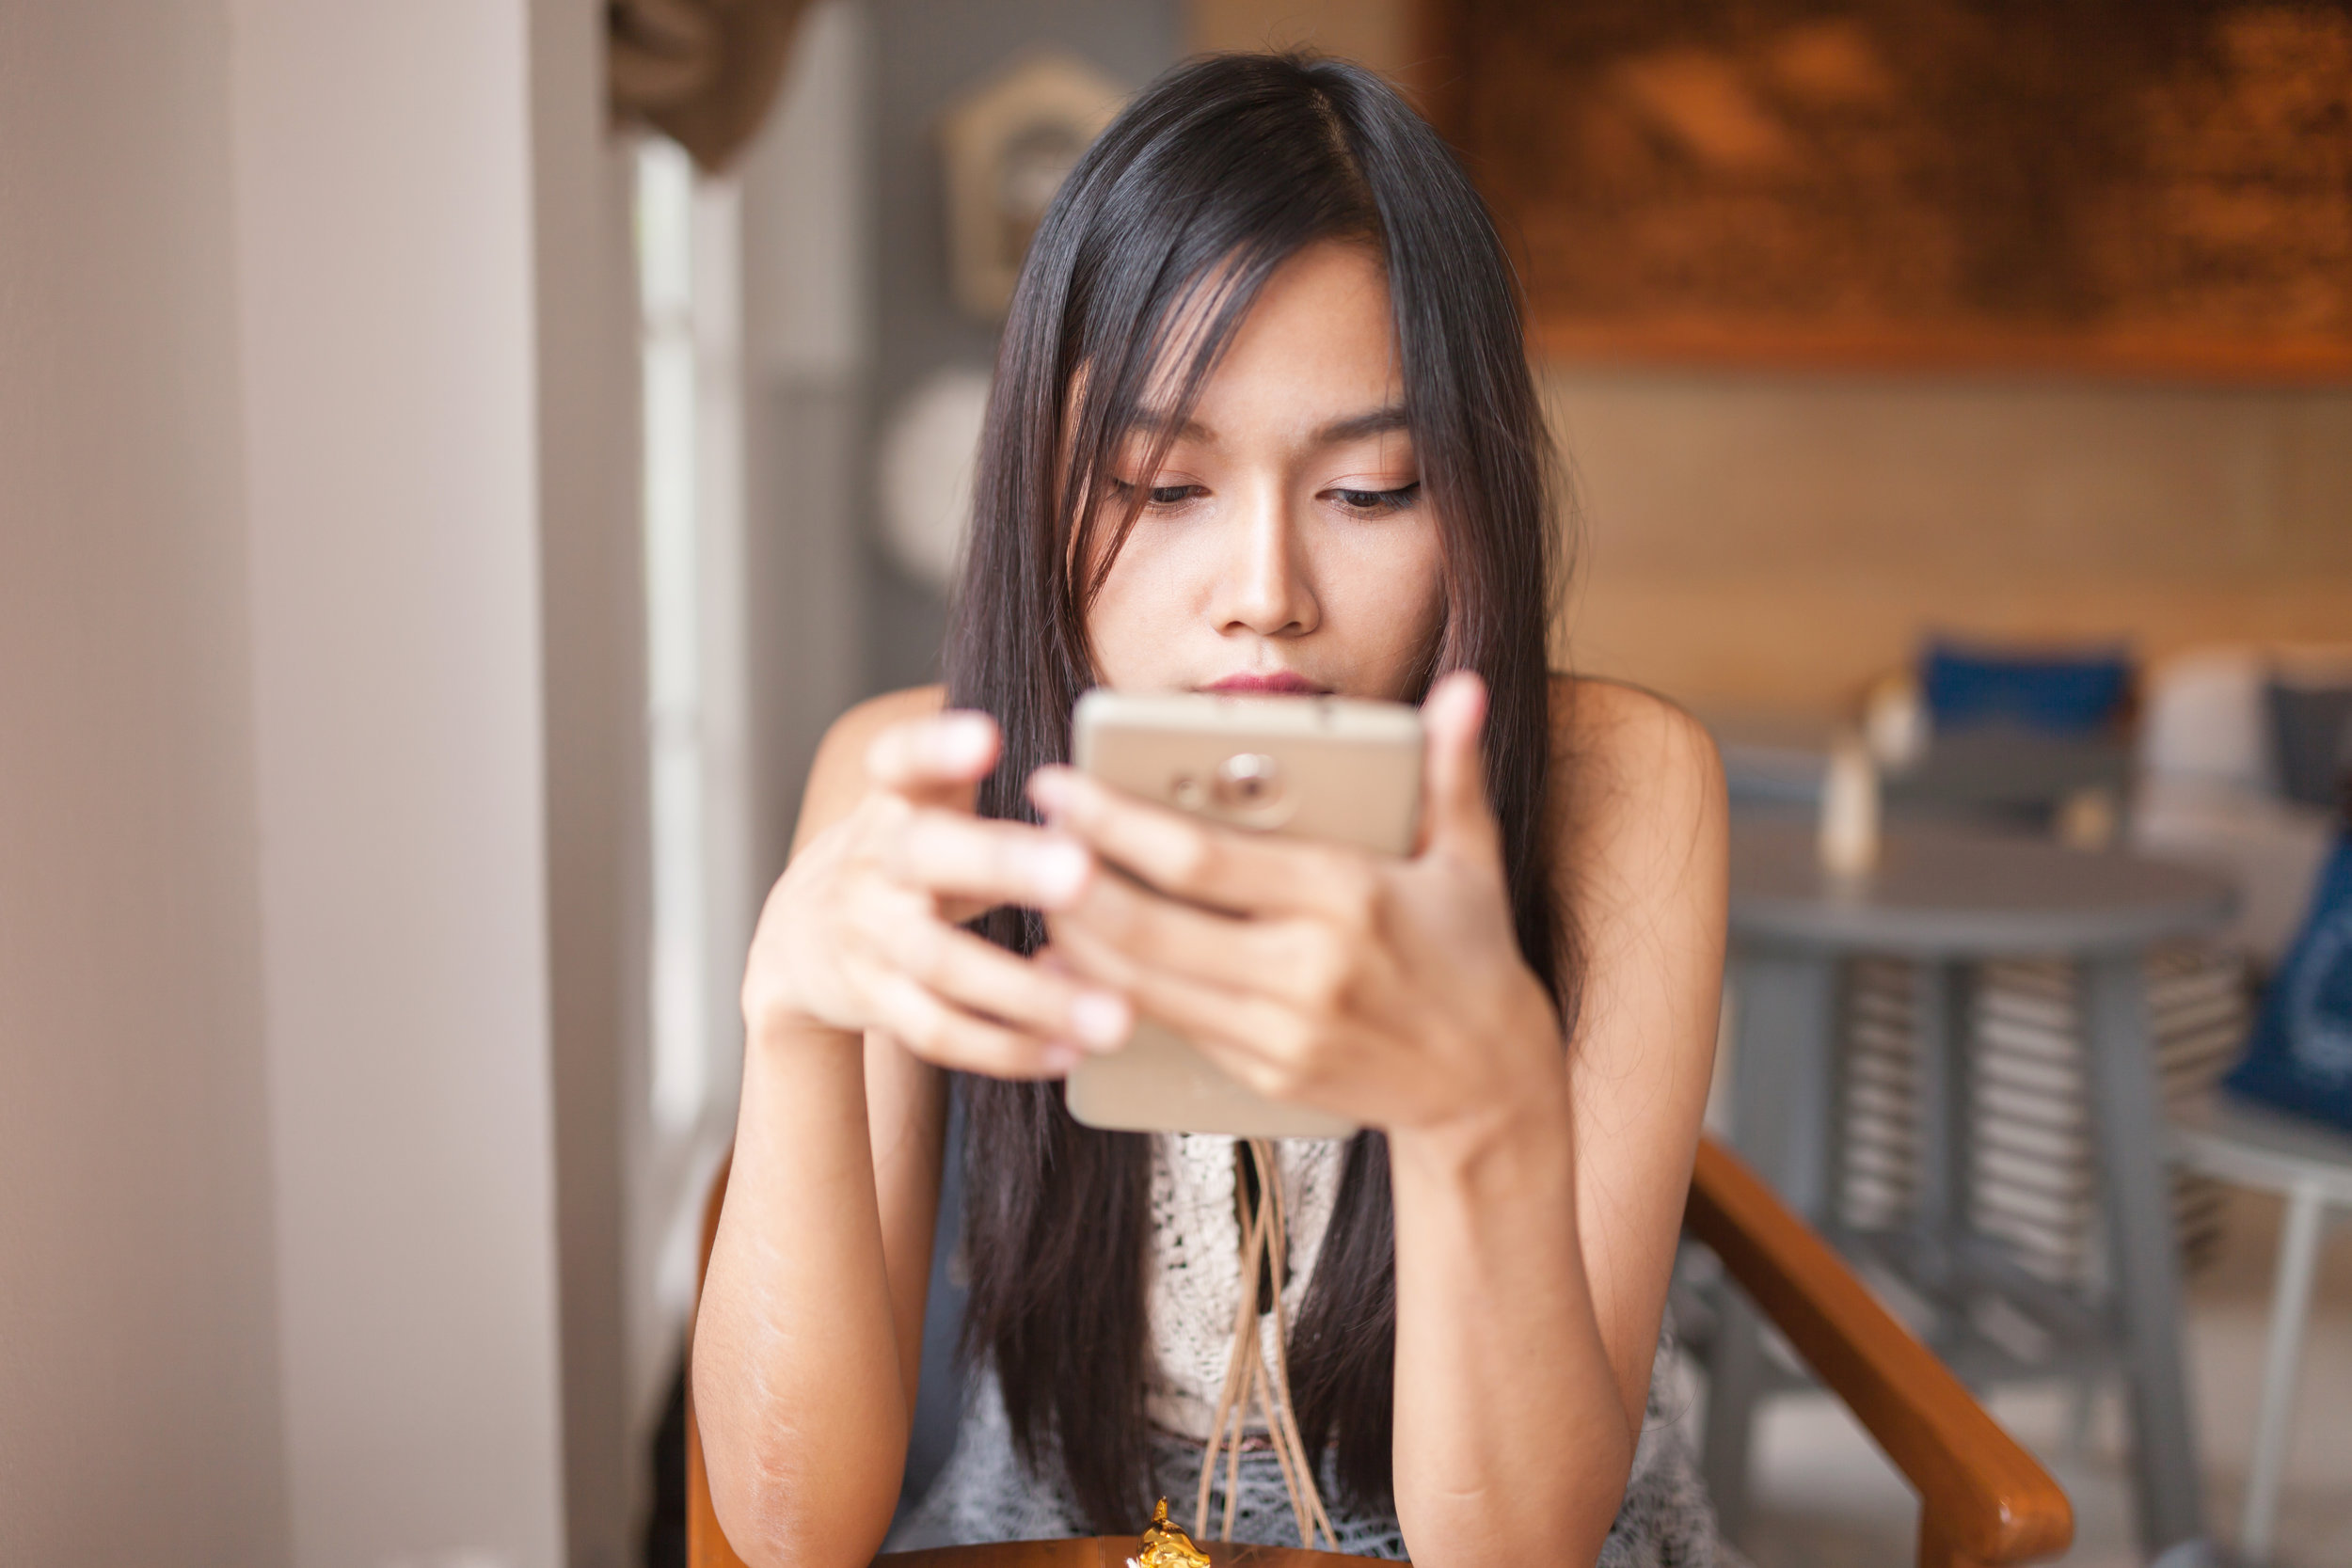 Girl browsing social media on a mobile device